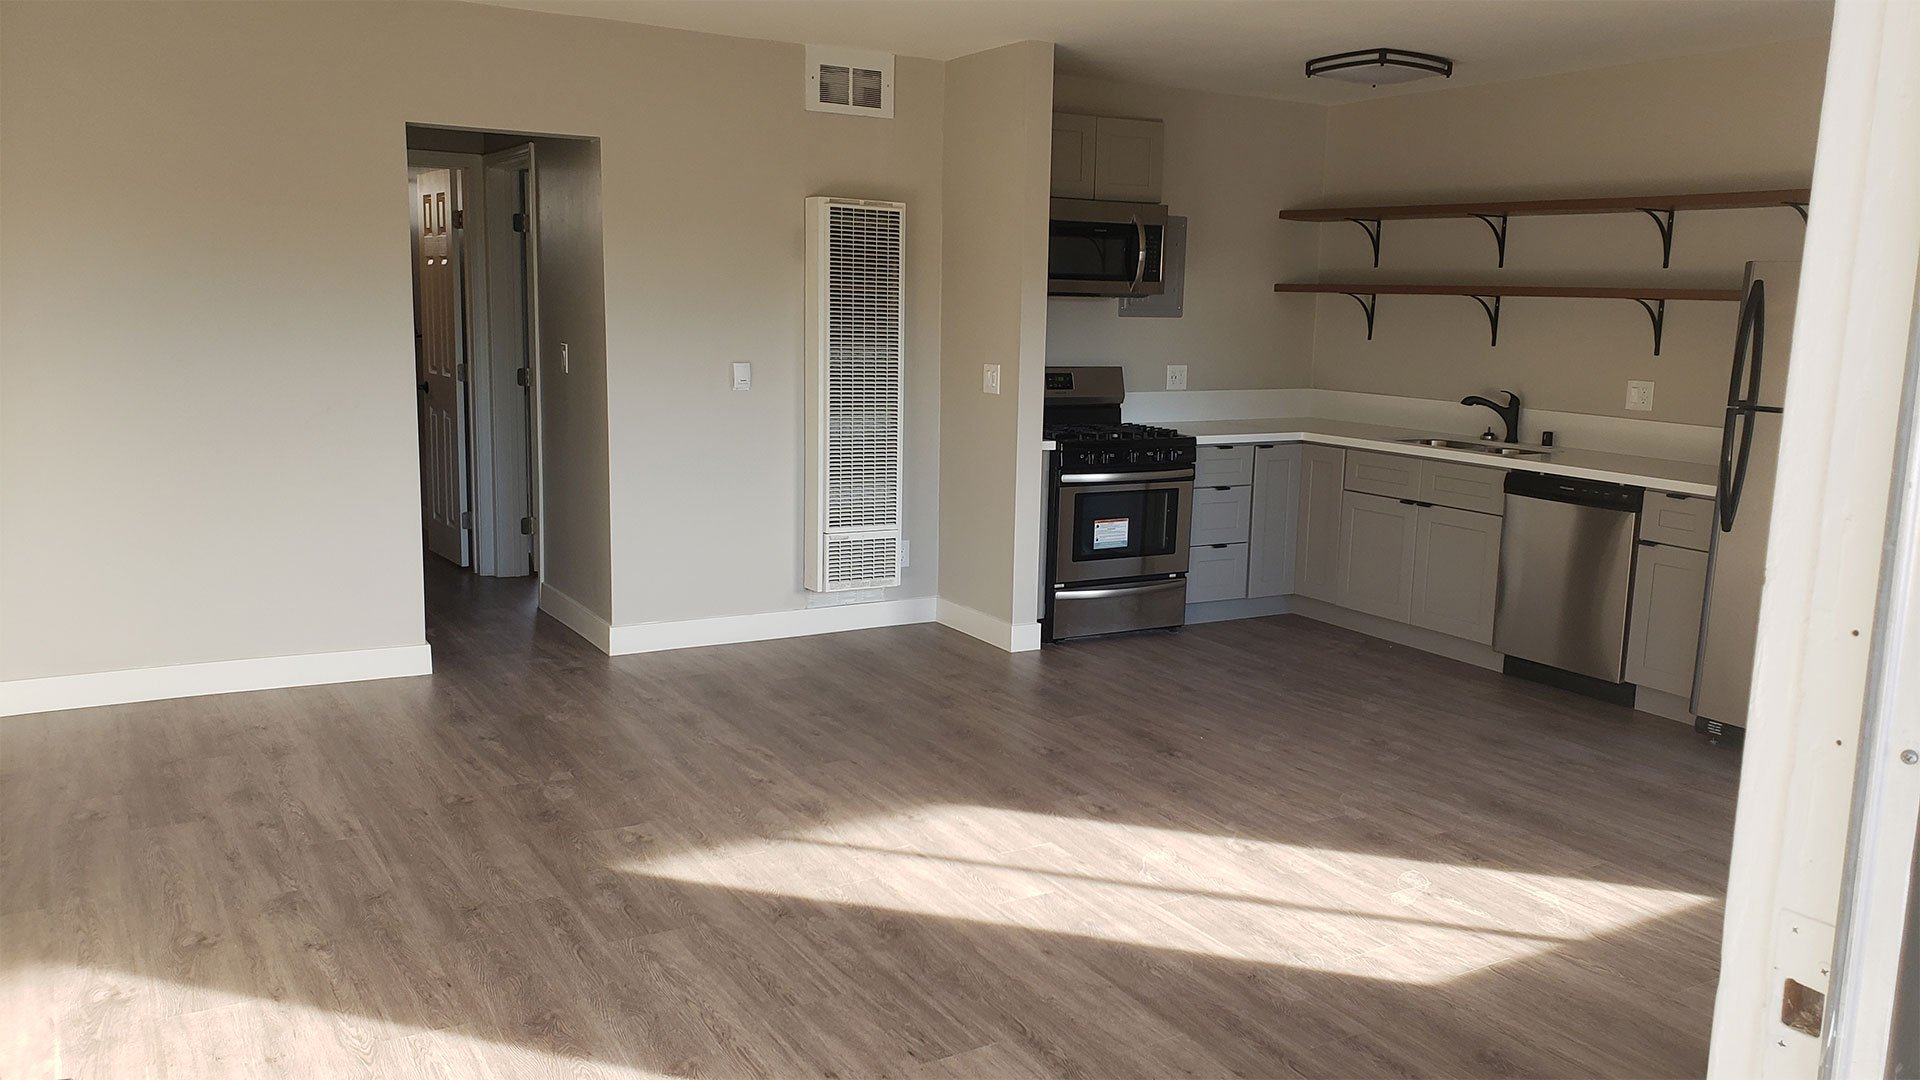 Living Room Space Near Kitchen and Dining Are at Wilson Apartments in Glendale, CA